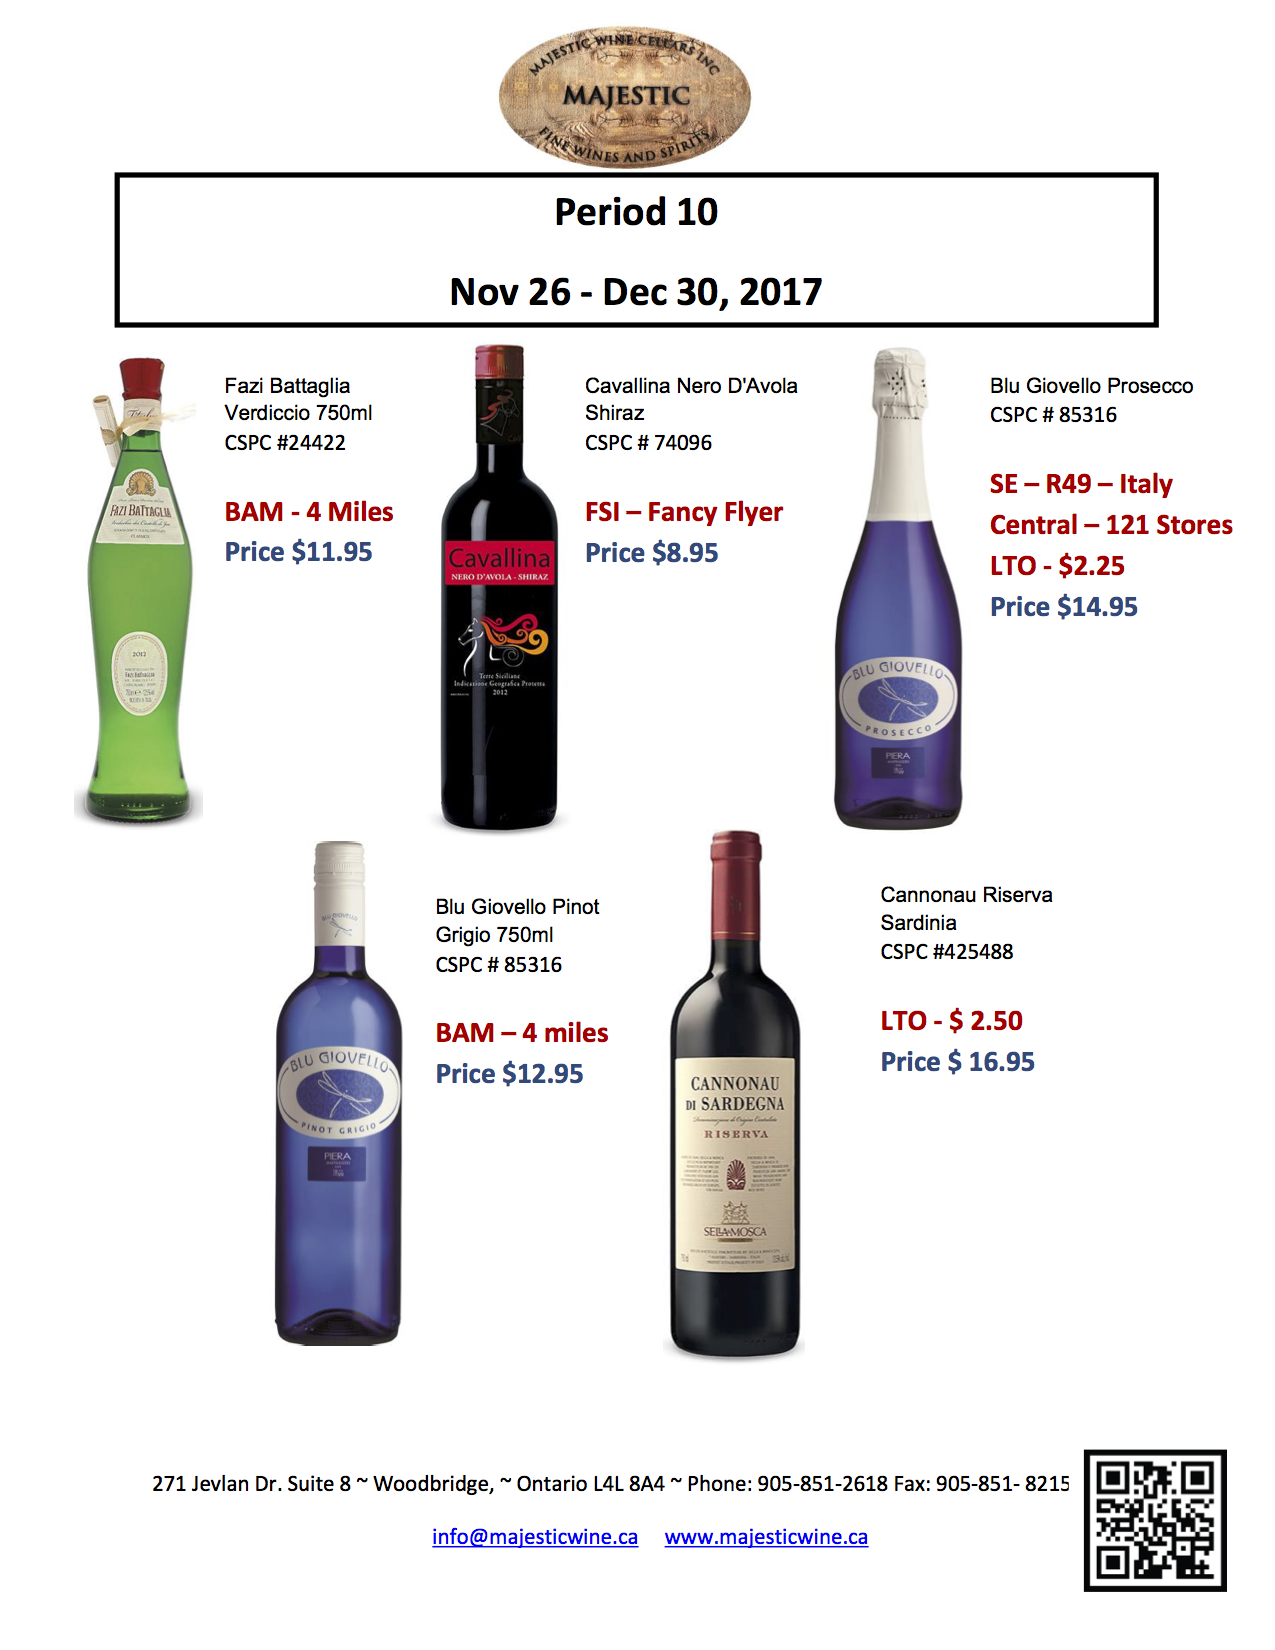 Period 10 - November 26th - December 30th, 2017 Promotion